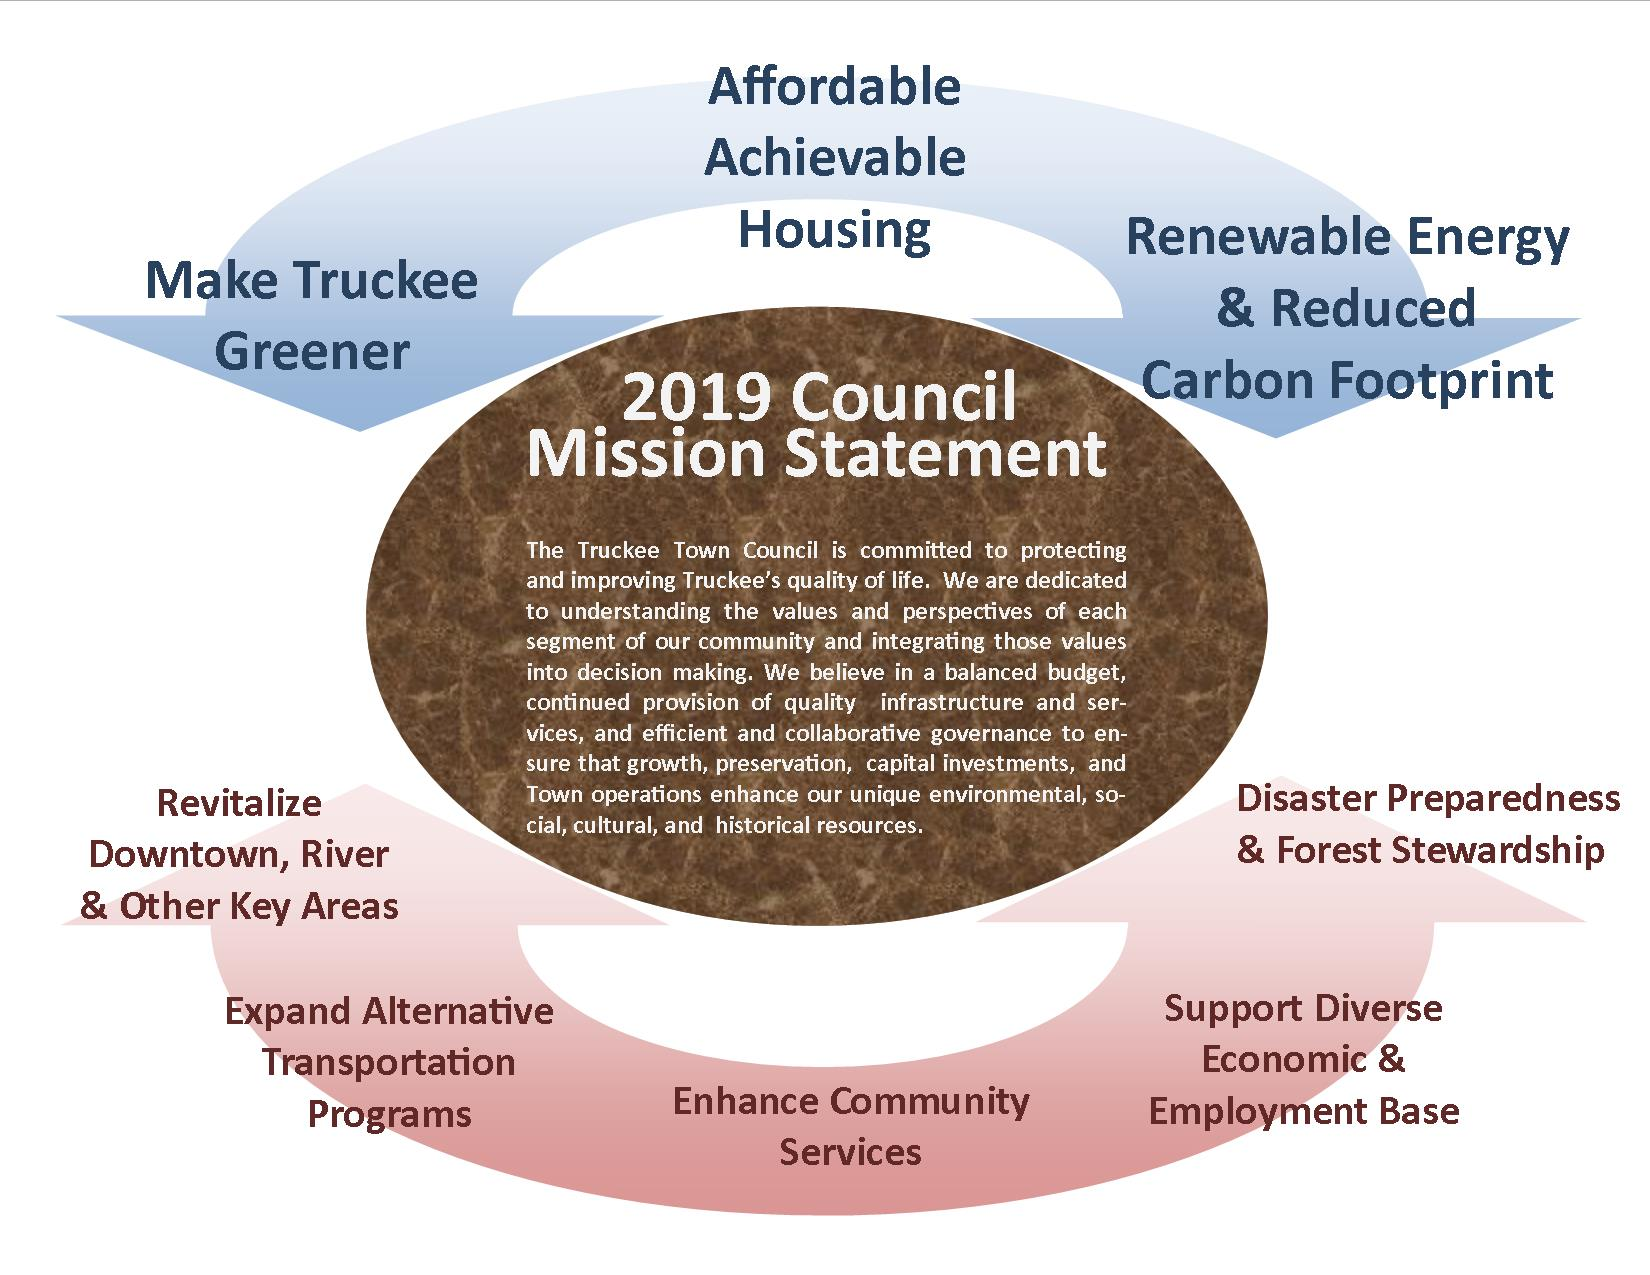 Council Mission Statement